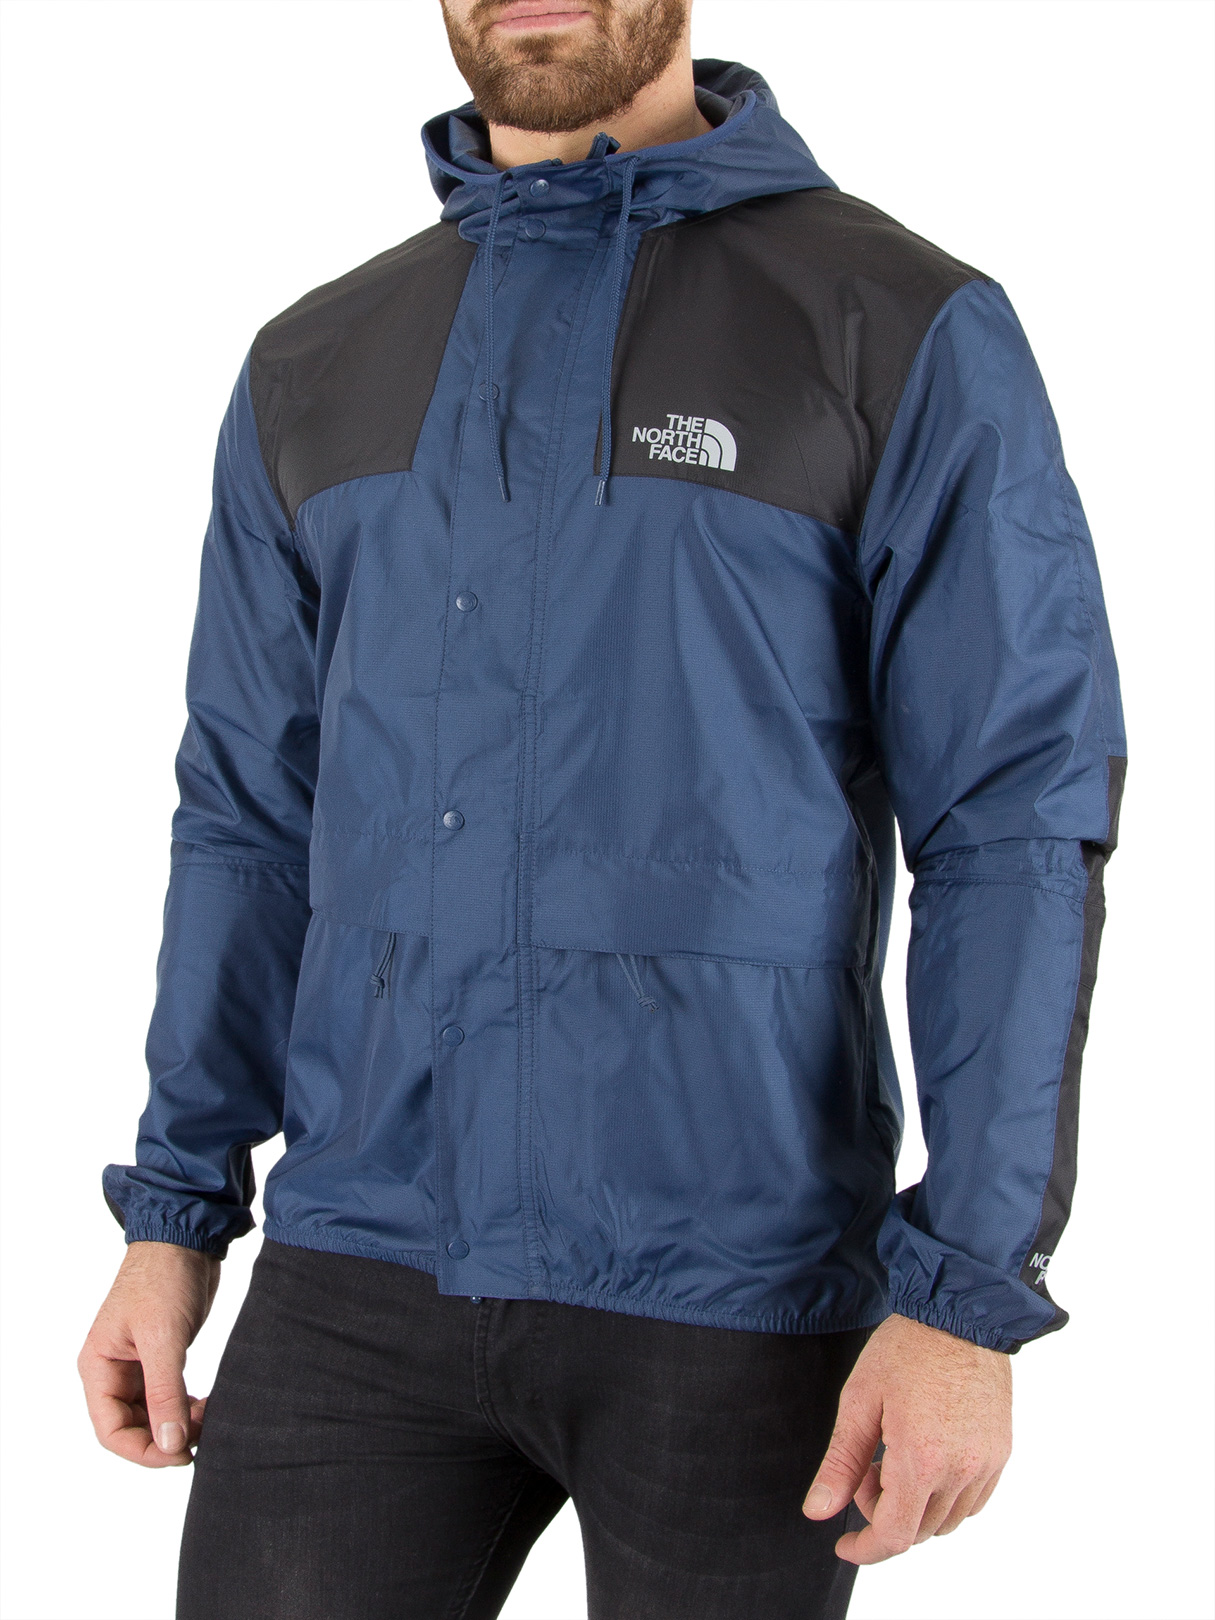 Stand-out.net The North Face Shady Blue 1985 Mountain Jacket